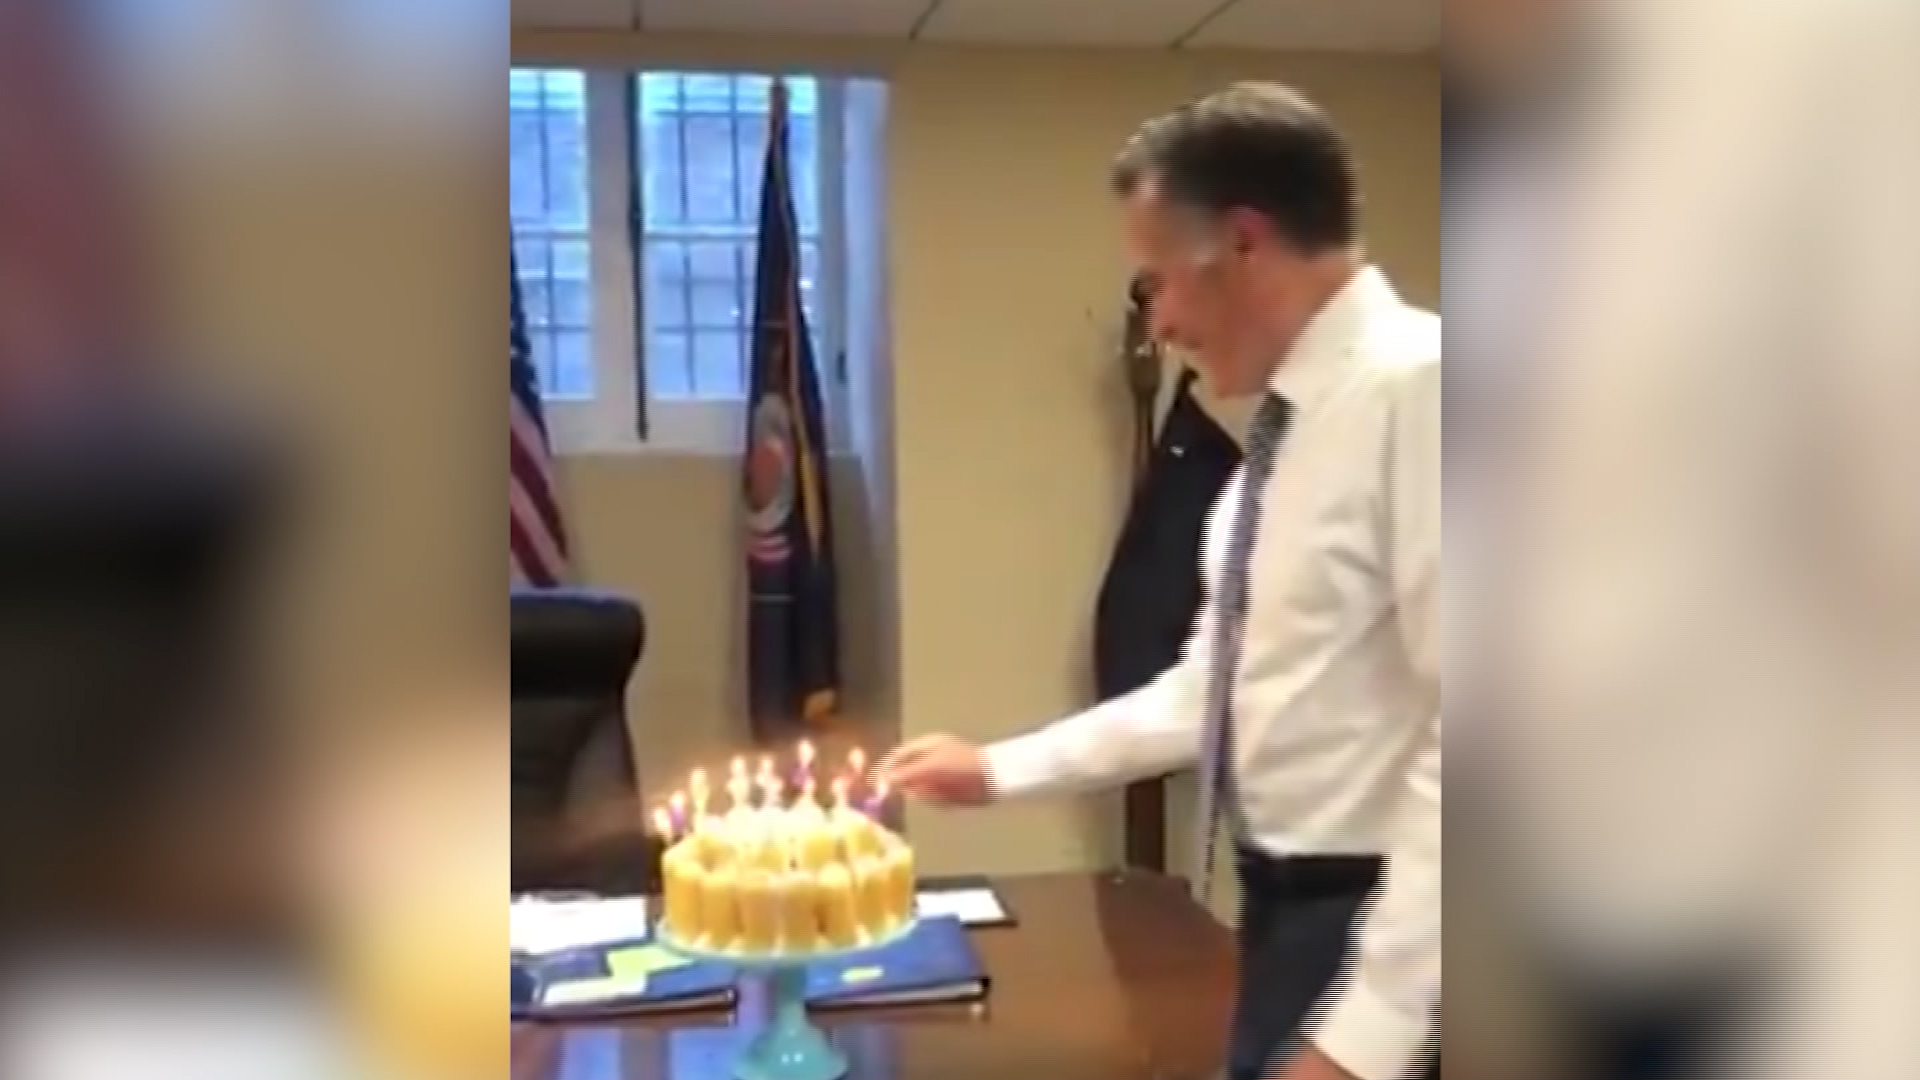 Miraculous Video Of Romney Blowing Out Candles Lights Up Internet Cnn Video Funny Birthday Cards Online Unhofree Goldxyz